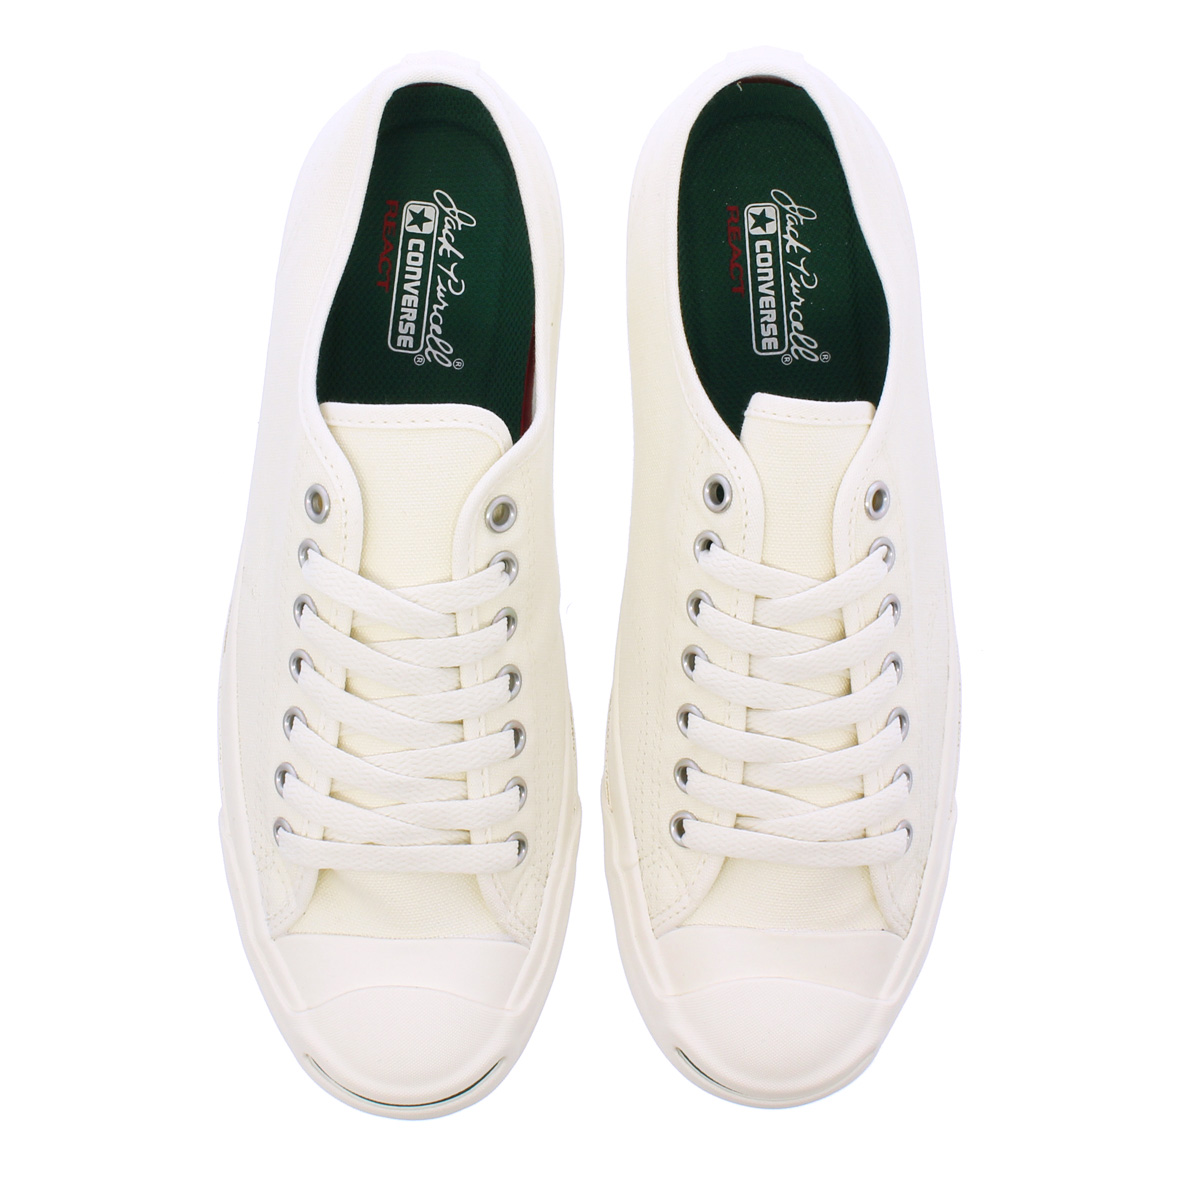 8a88c83923780f CONVERSE JACK PURCELL WR CANVAS R Converse Jack Pursel WR canvas R  WHITE GREEN 1CL198